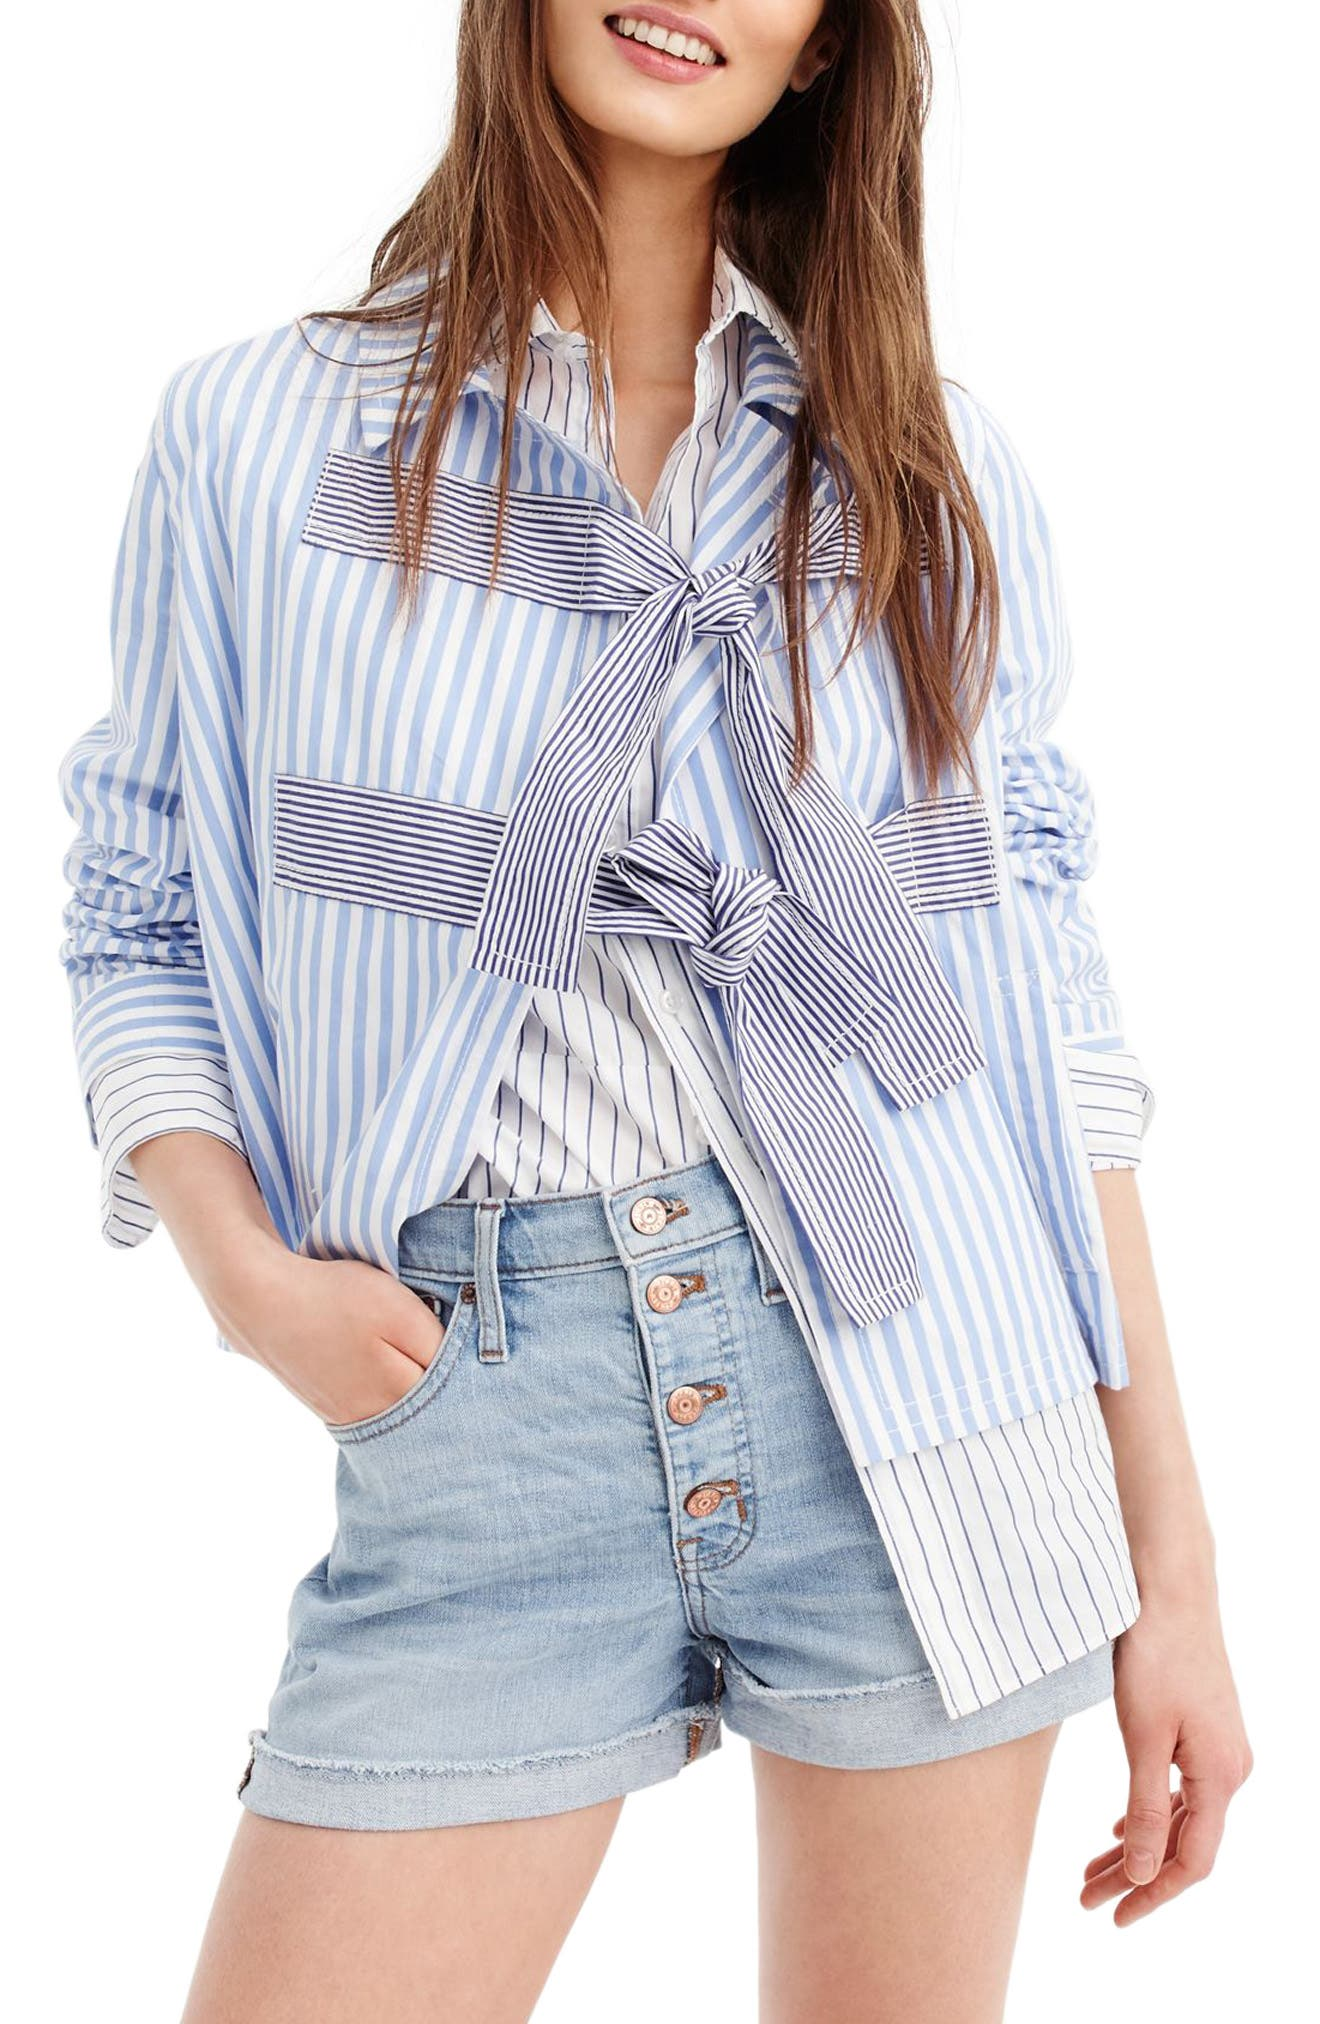 J.Crew Rhonda Mixed Stripe Bow Jacket